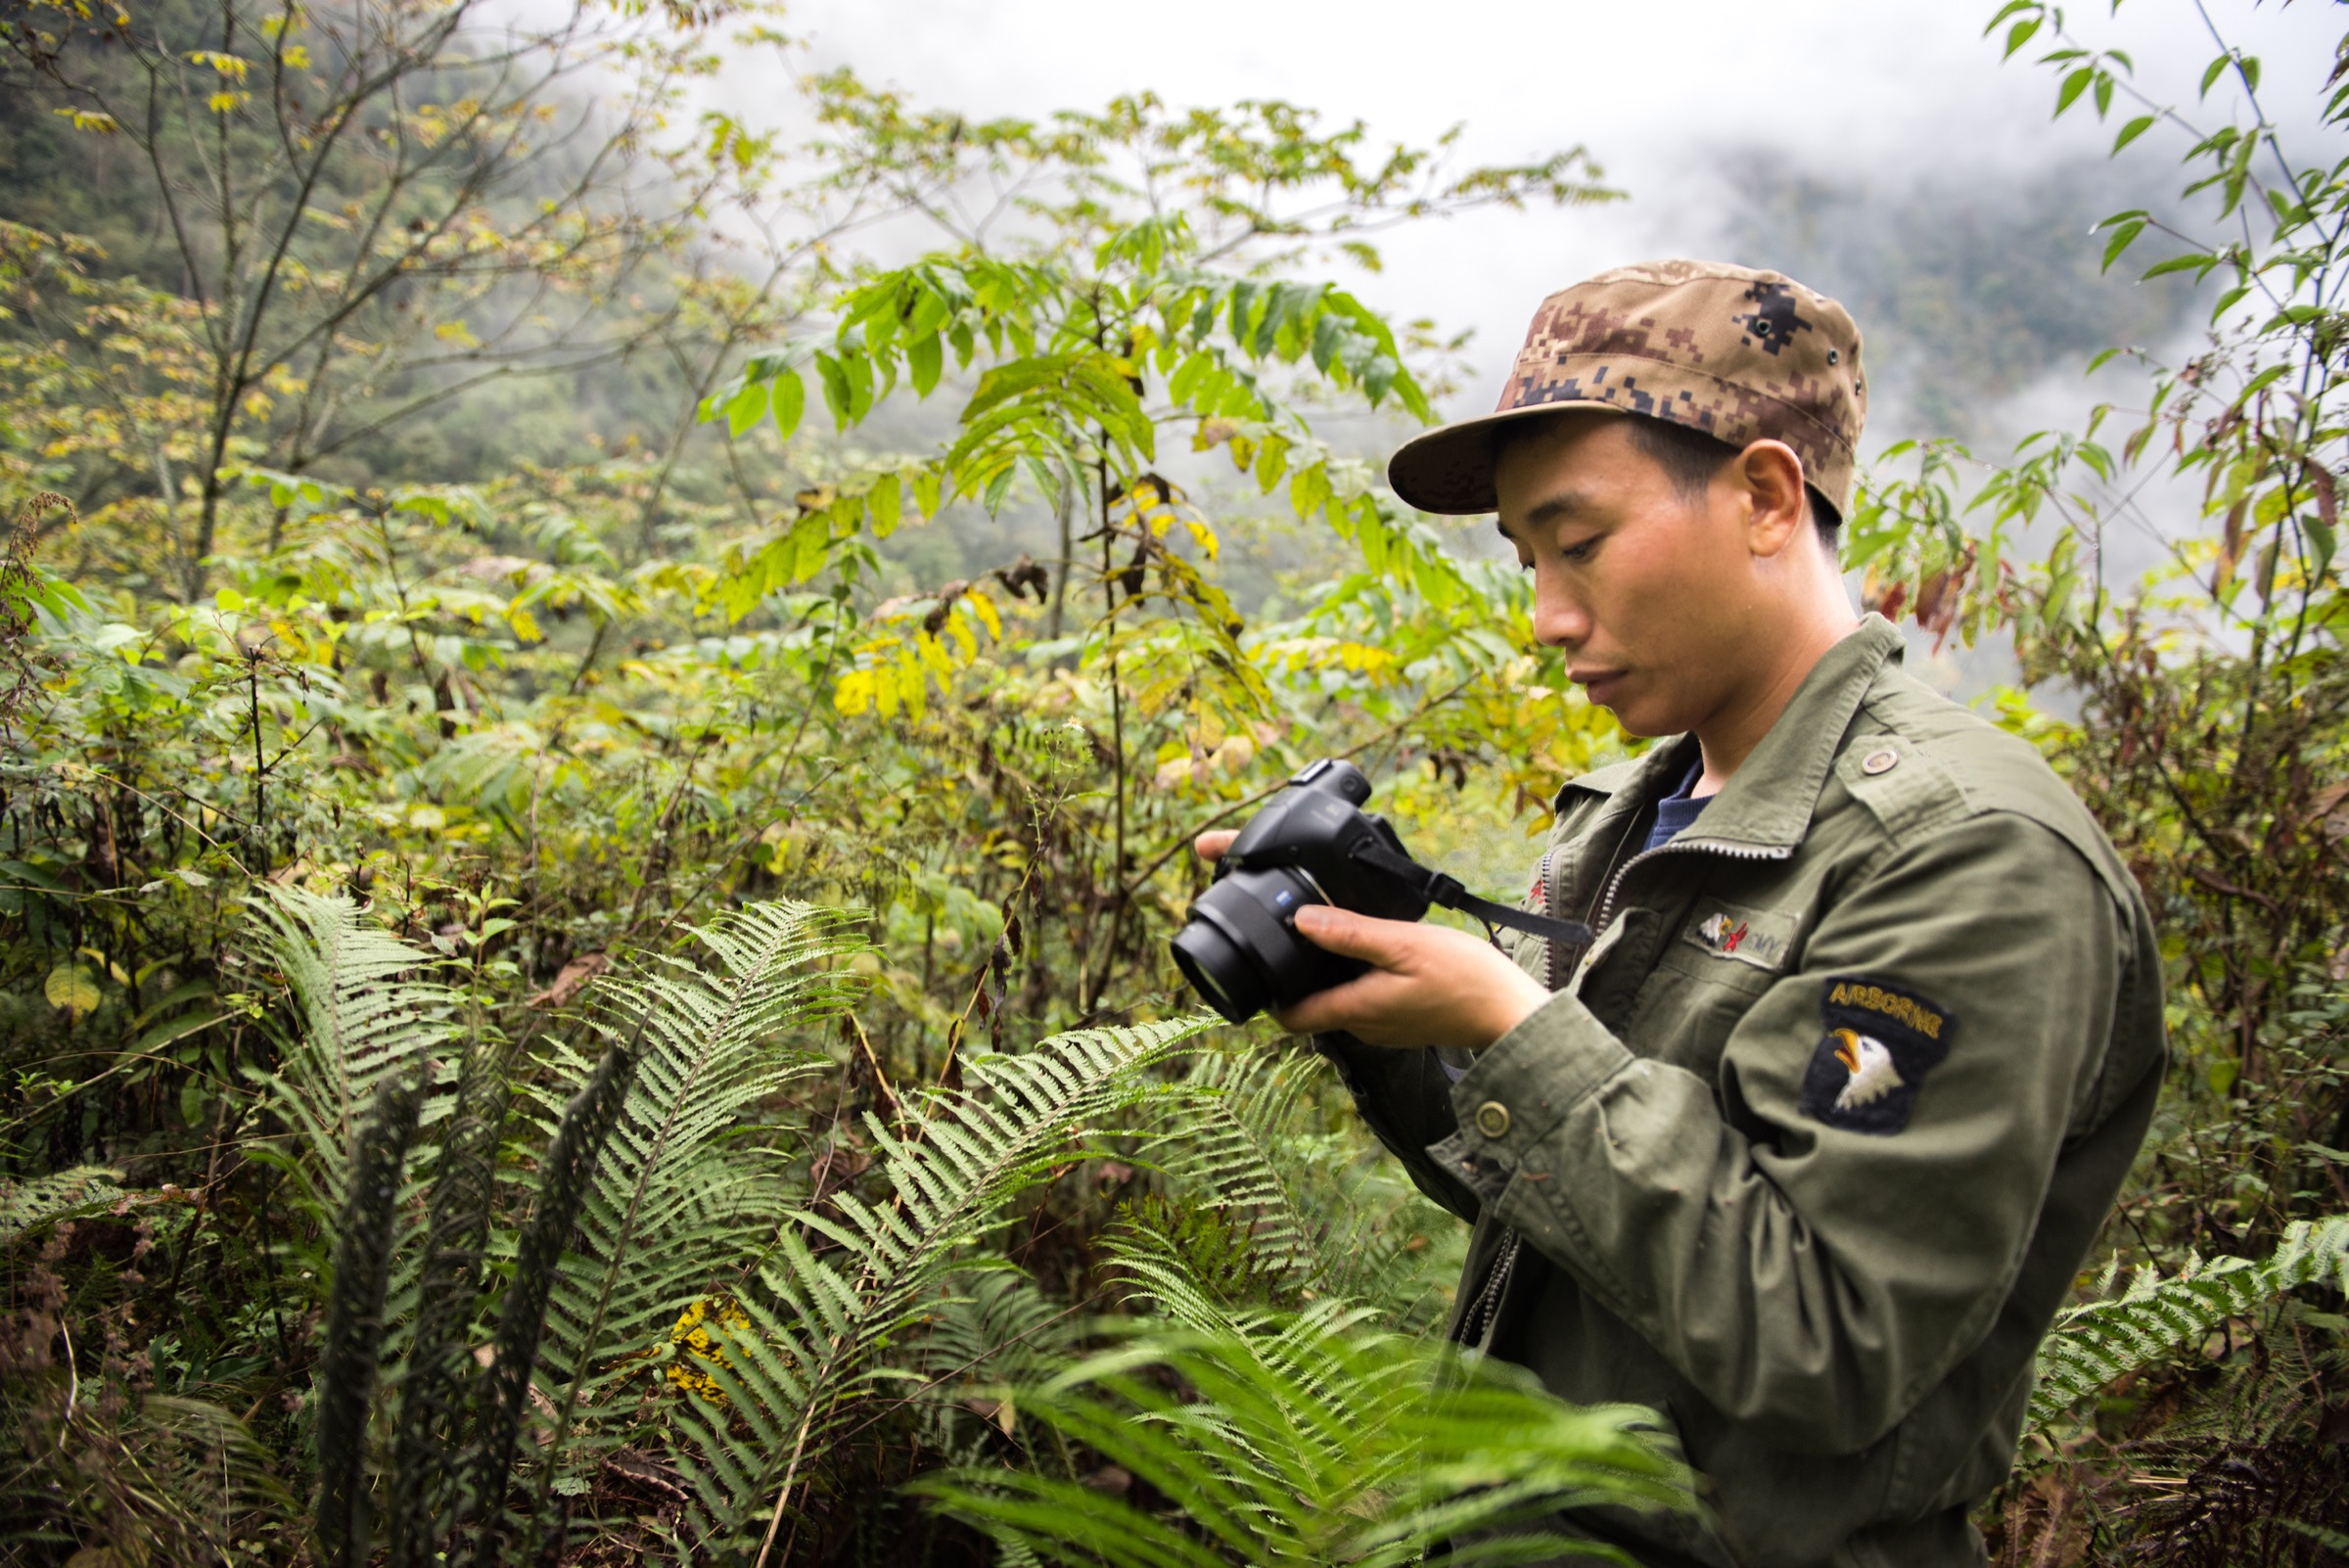 Li Xinrui, a member of Guanba Community Reserve's patrol team, is in charge of photographing species encountered during the team's patrol of Guanba Valley. Photograph by Kyle Obermann